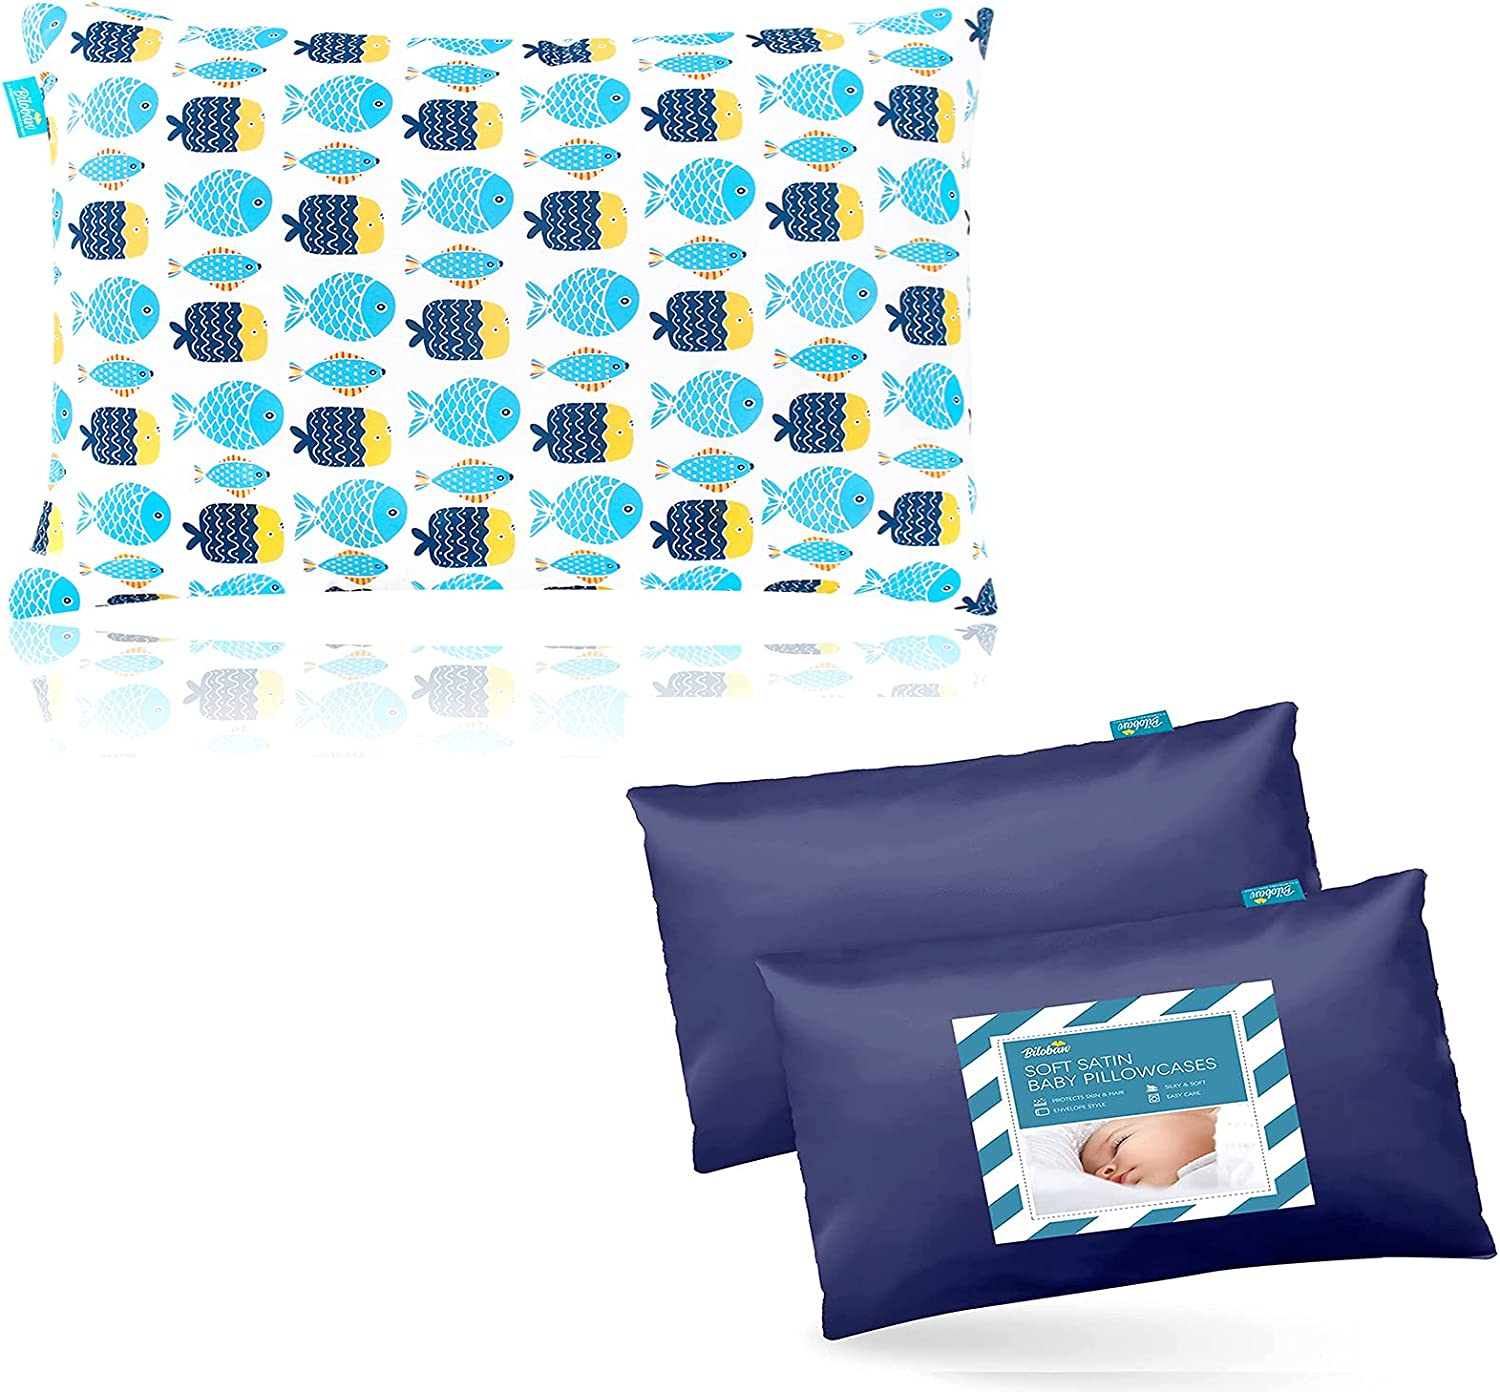 Max 89% OFF Kid Toddler Pillow Our shop most popular for Sleeping with Satin Print Fish Toddle